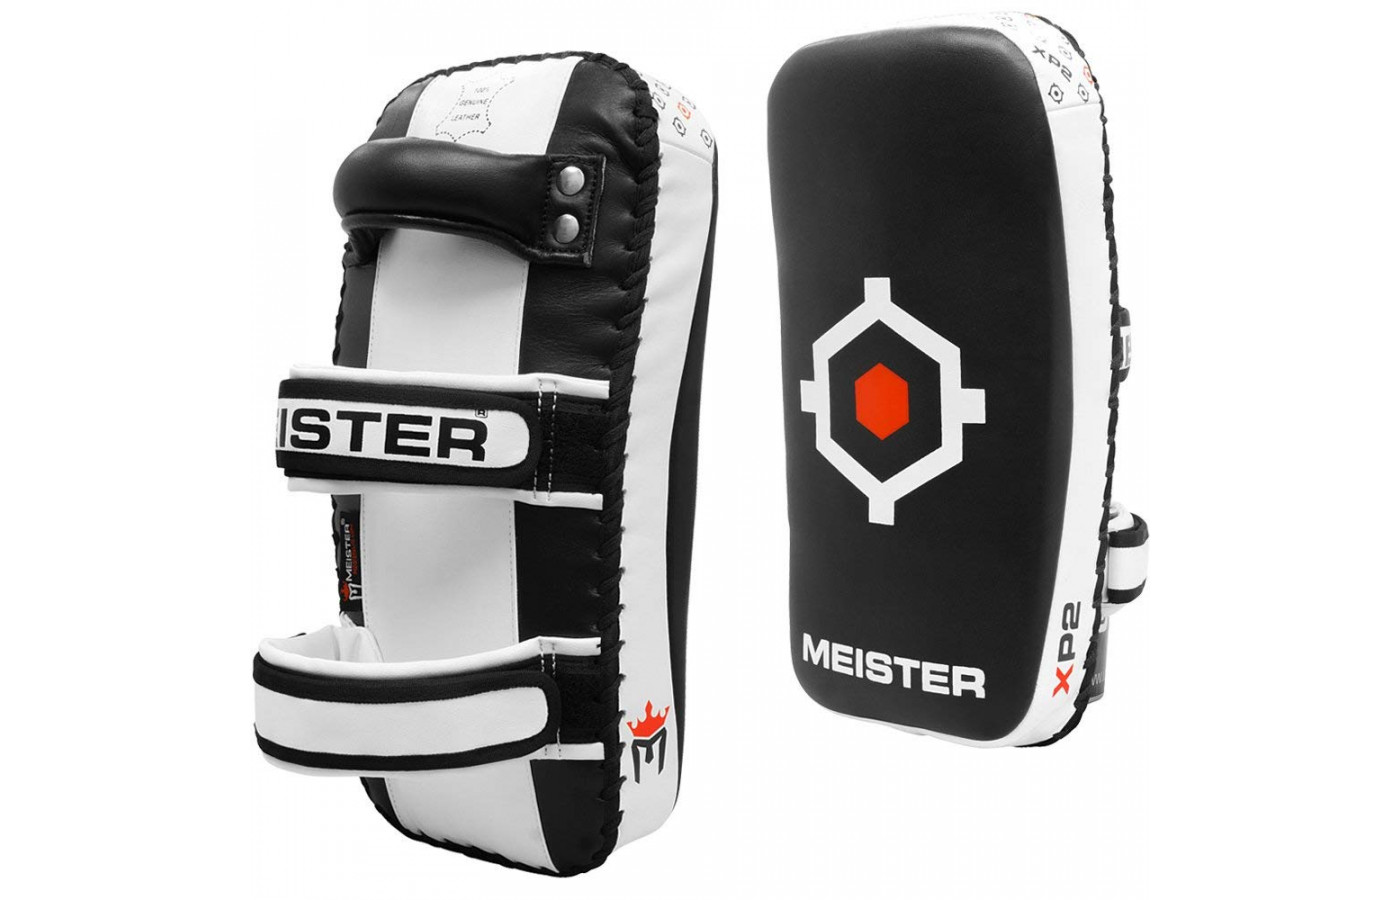 meister xp2 front and back